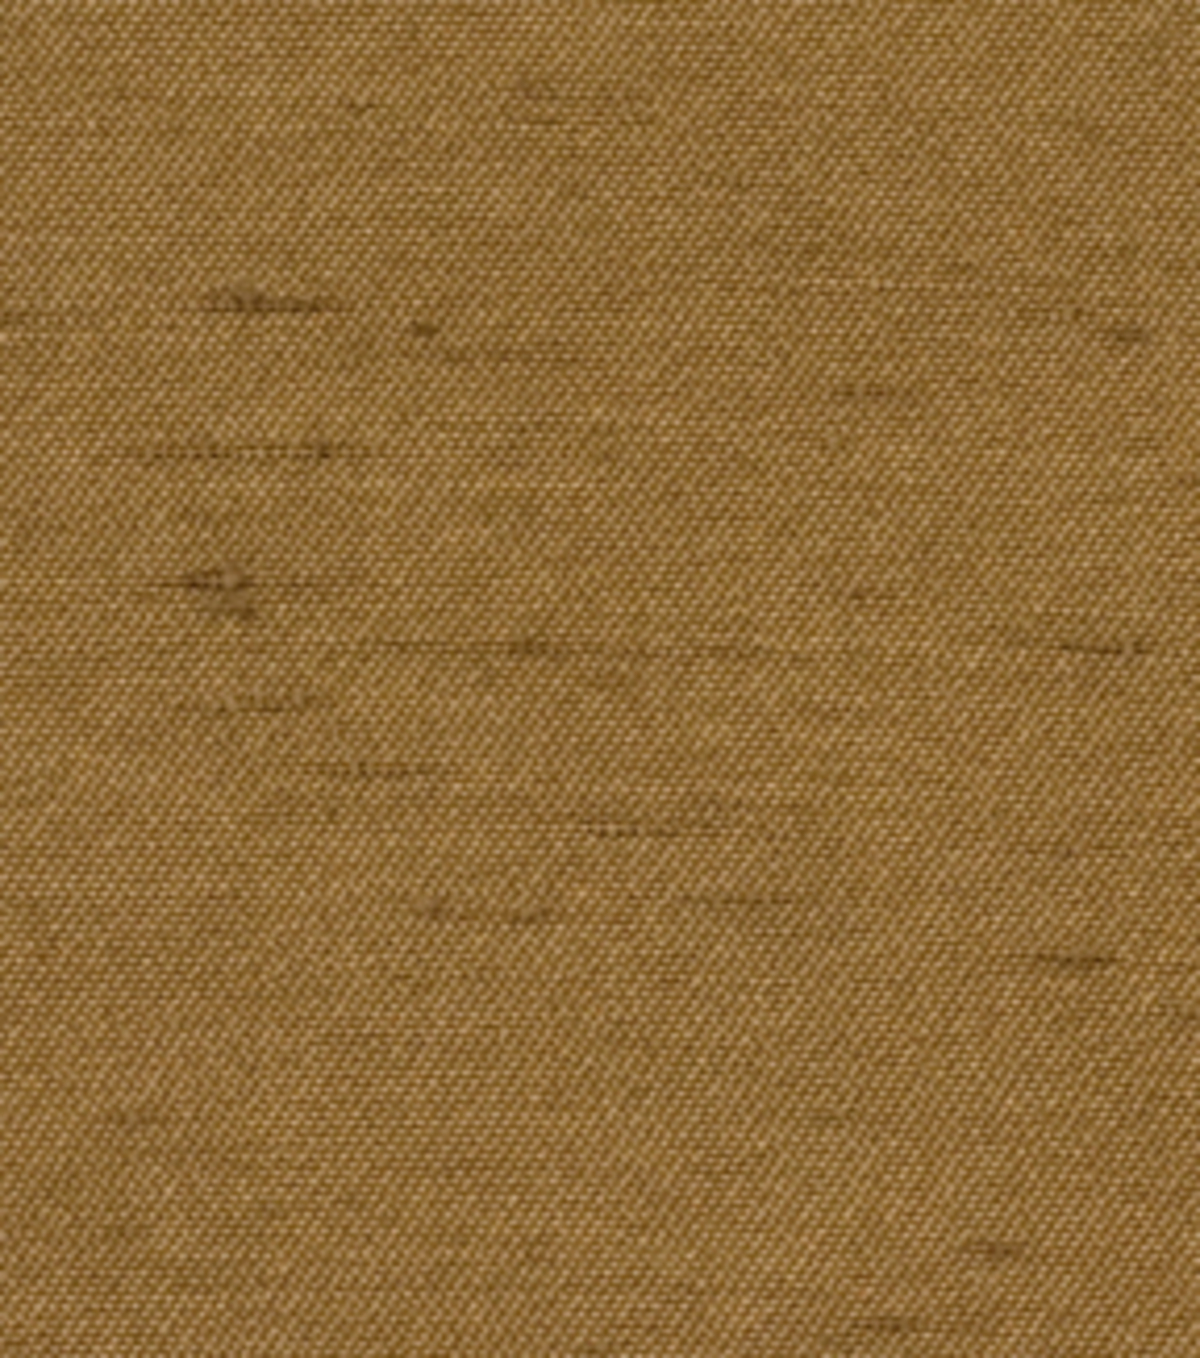 Home Decor 8\u0022x8\u0022 Fabric Swatch-Signature Series Antique Satin Molasses